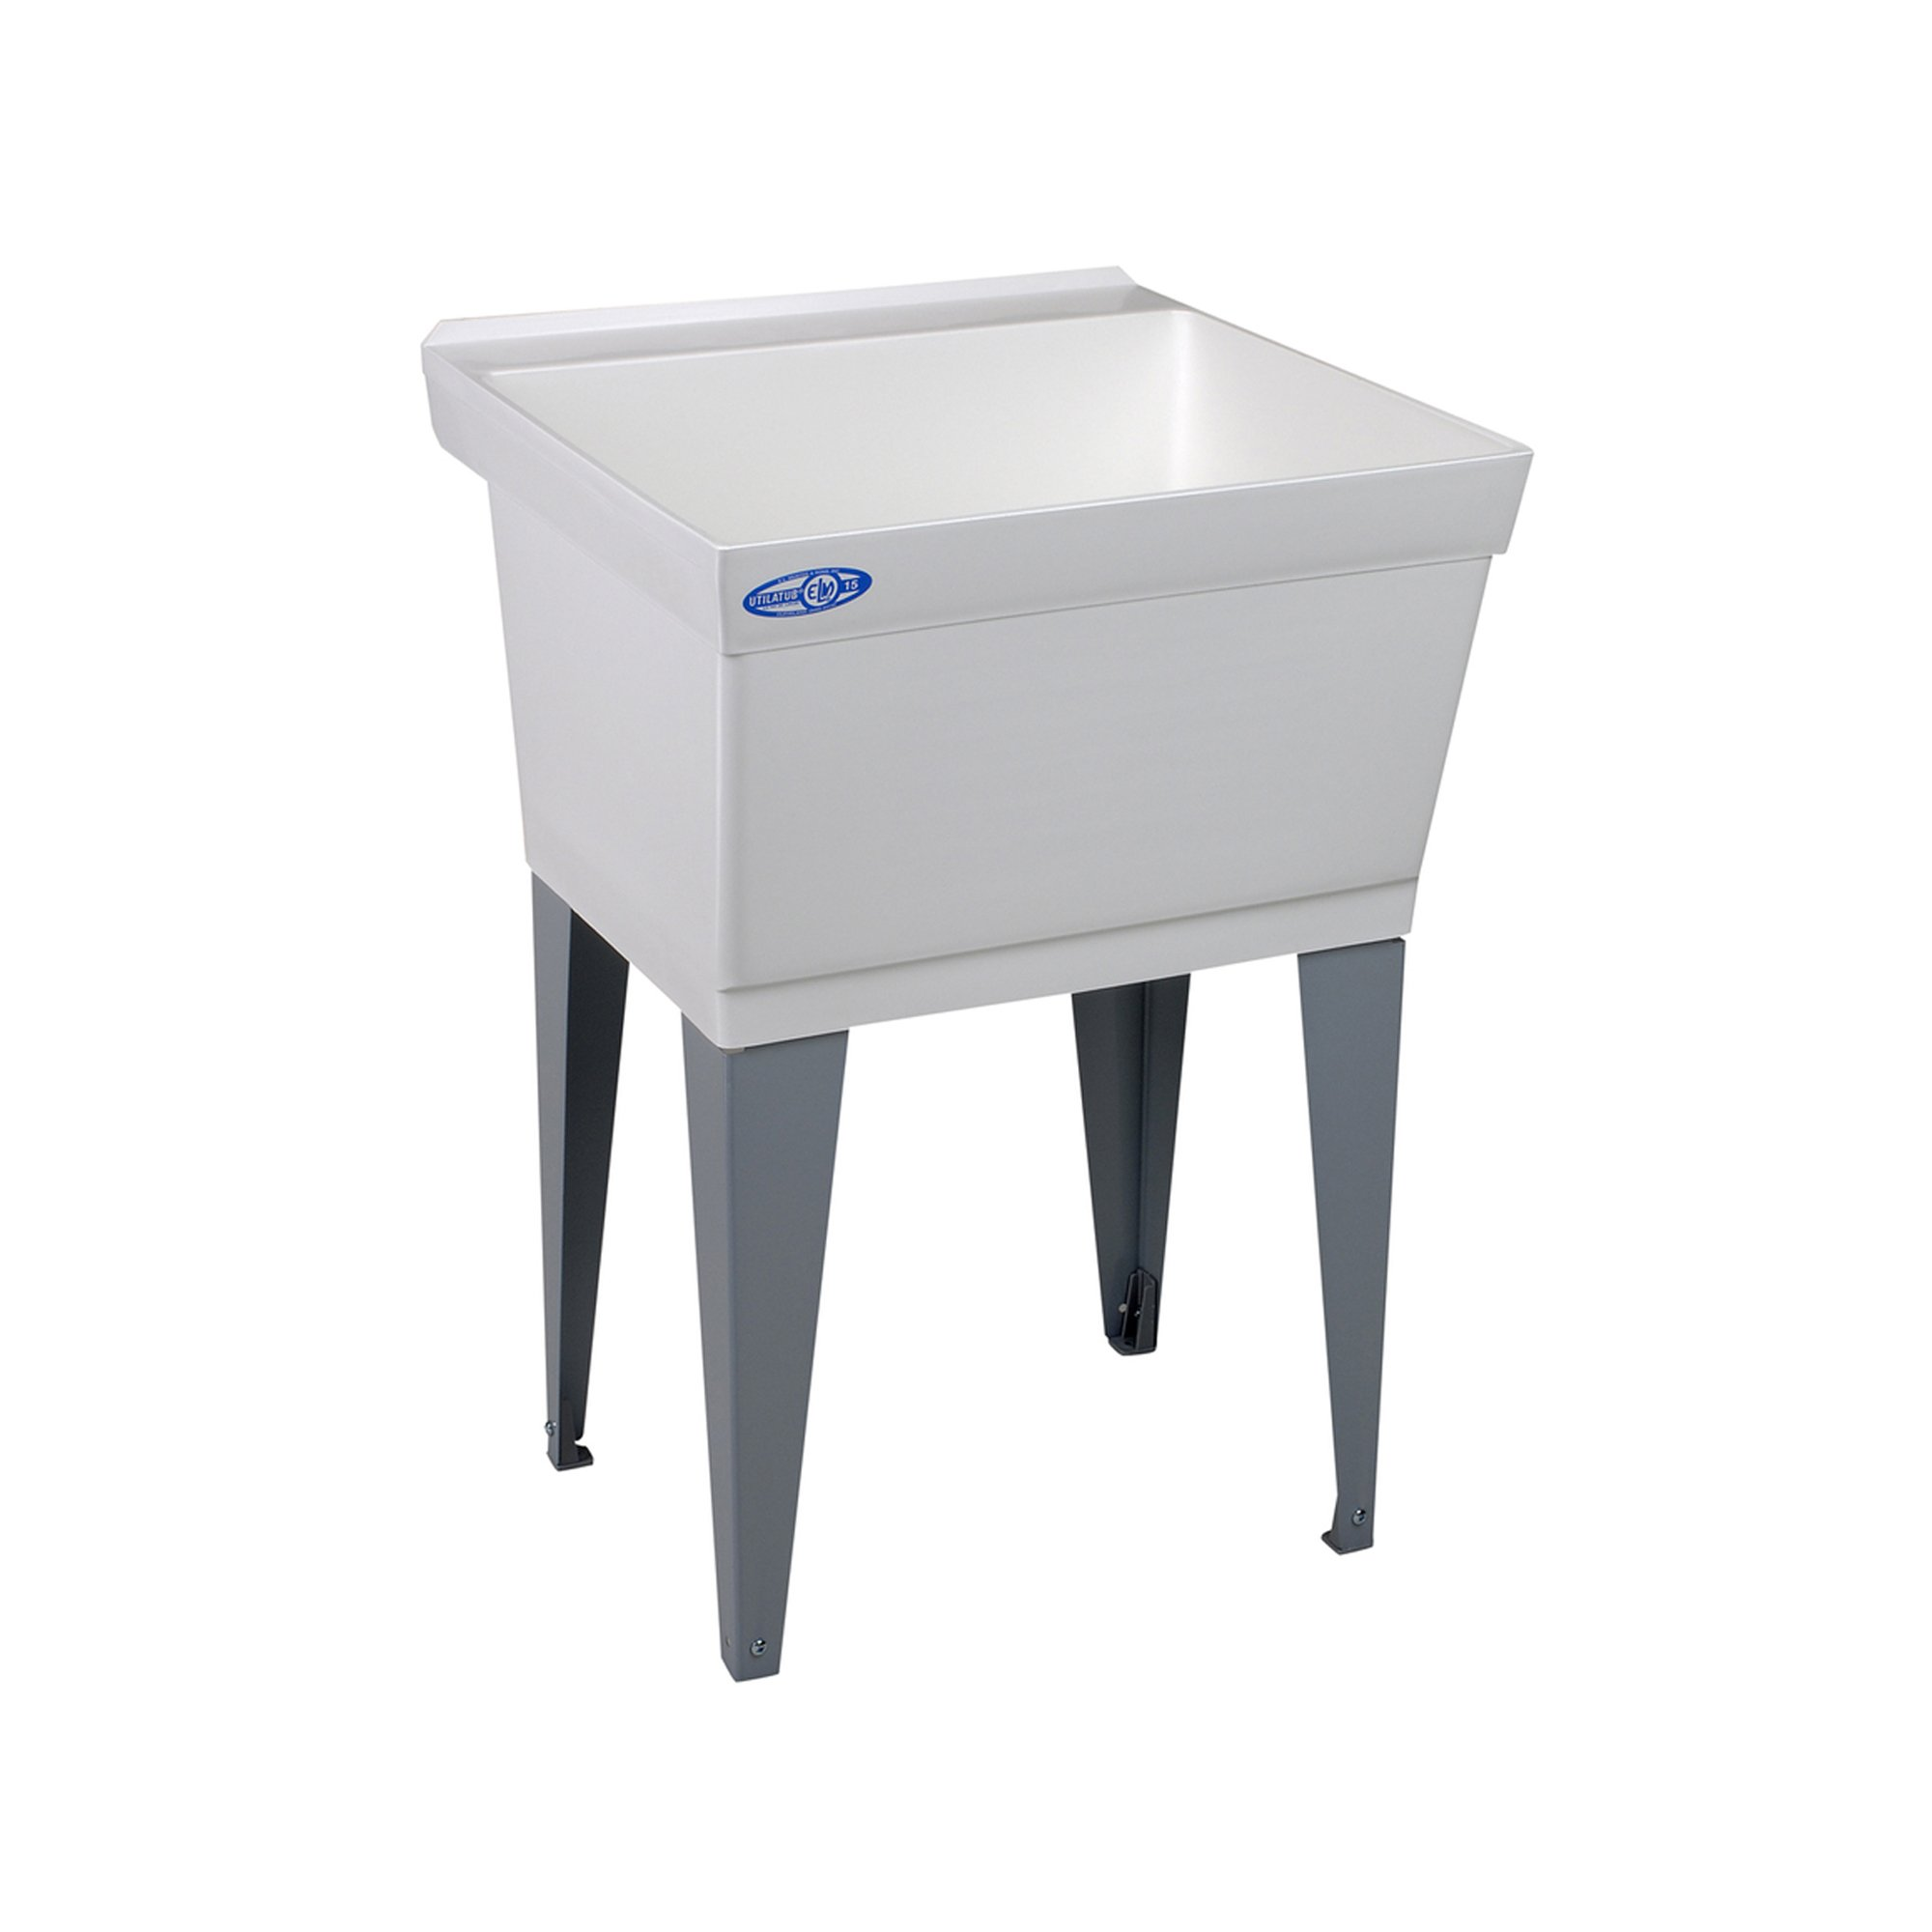 Mustee 15F Utilatub Laundry Tub Floor Mount, 23.5-Inch x 23-Inch, White by Mustee